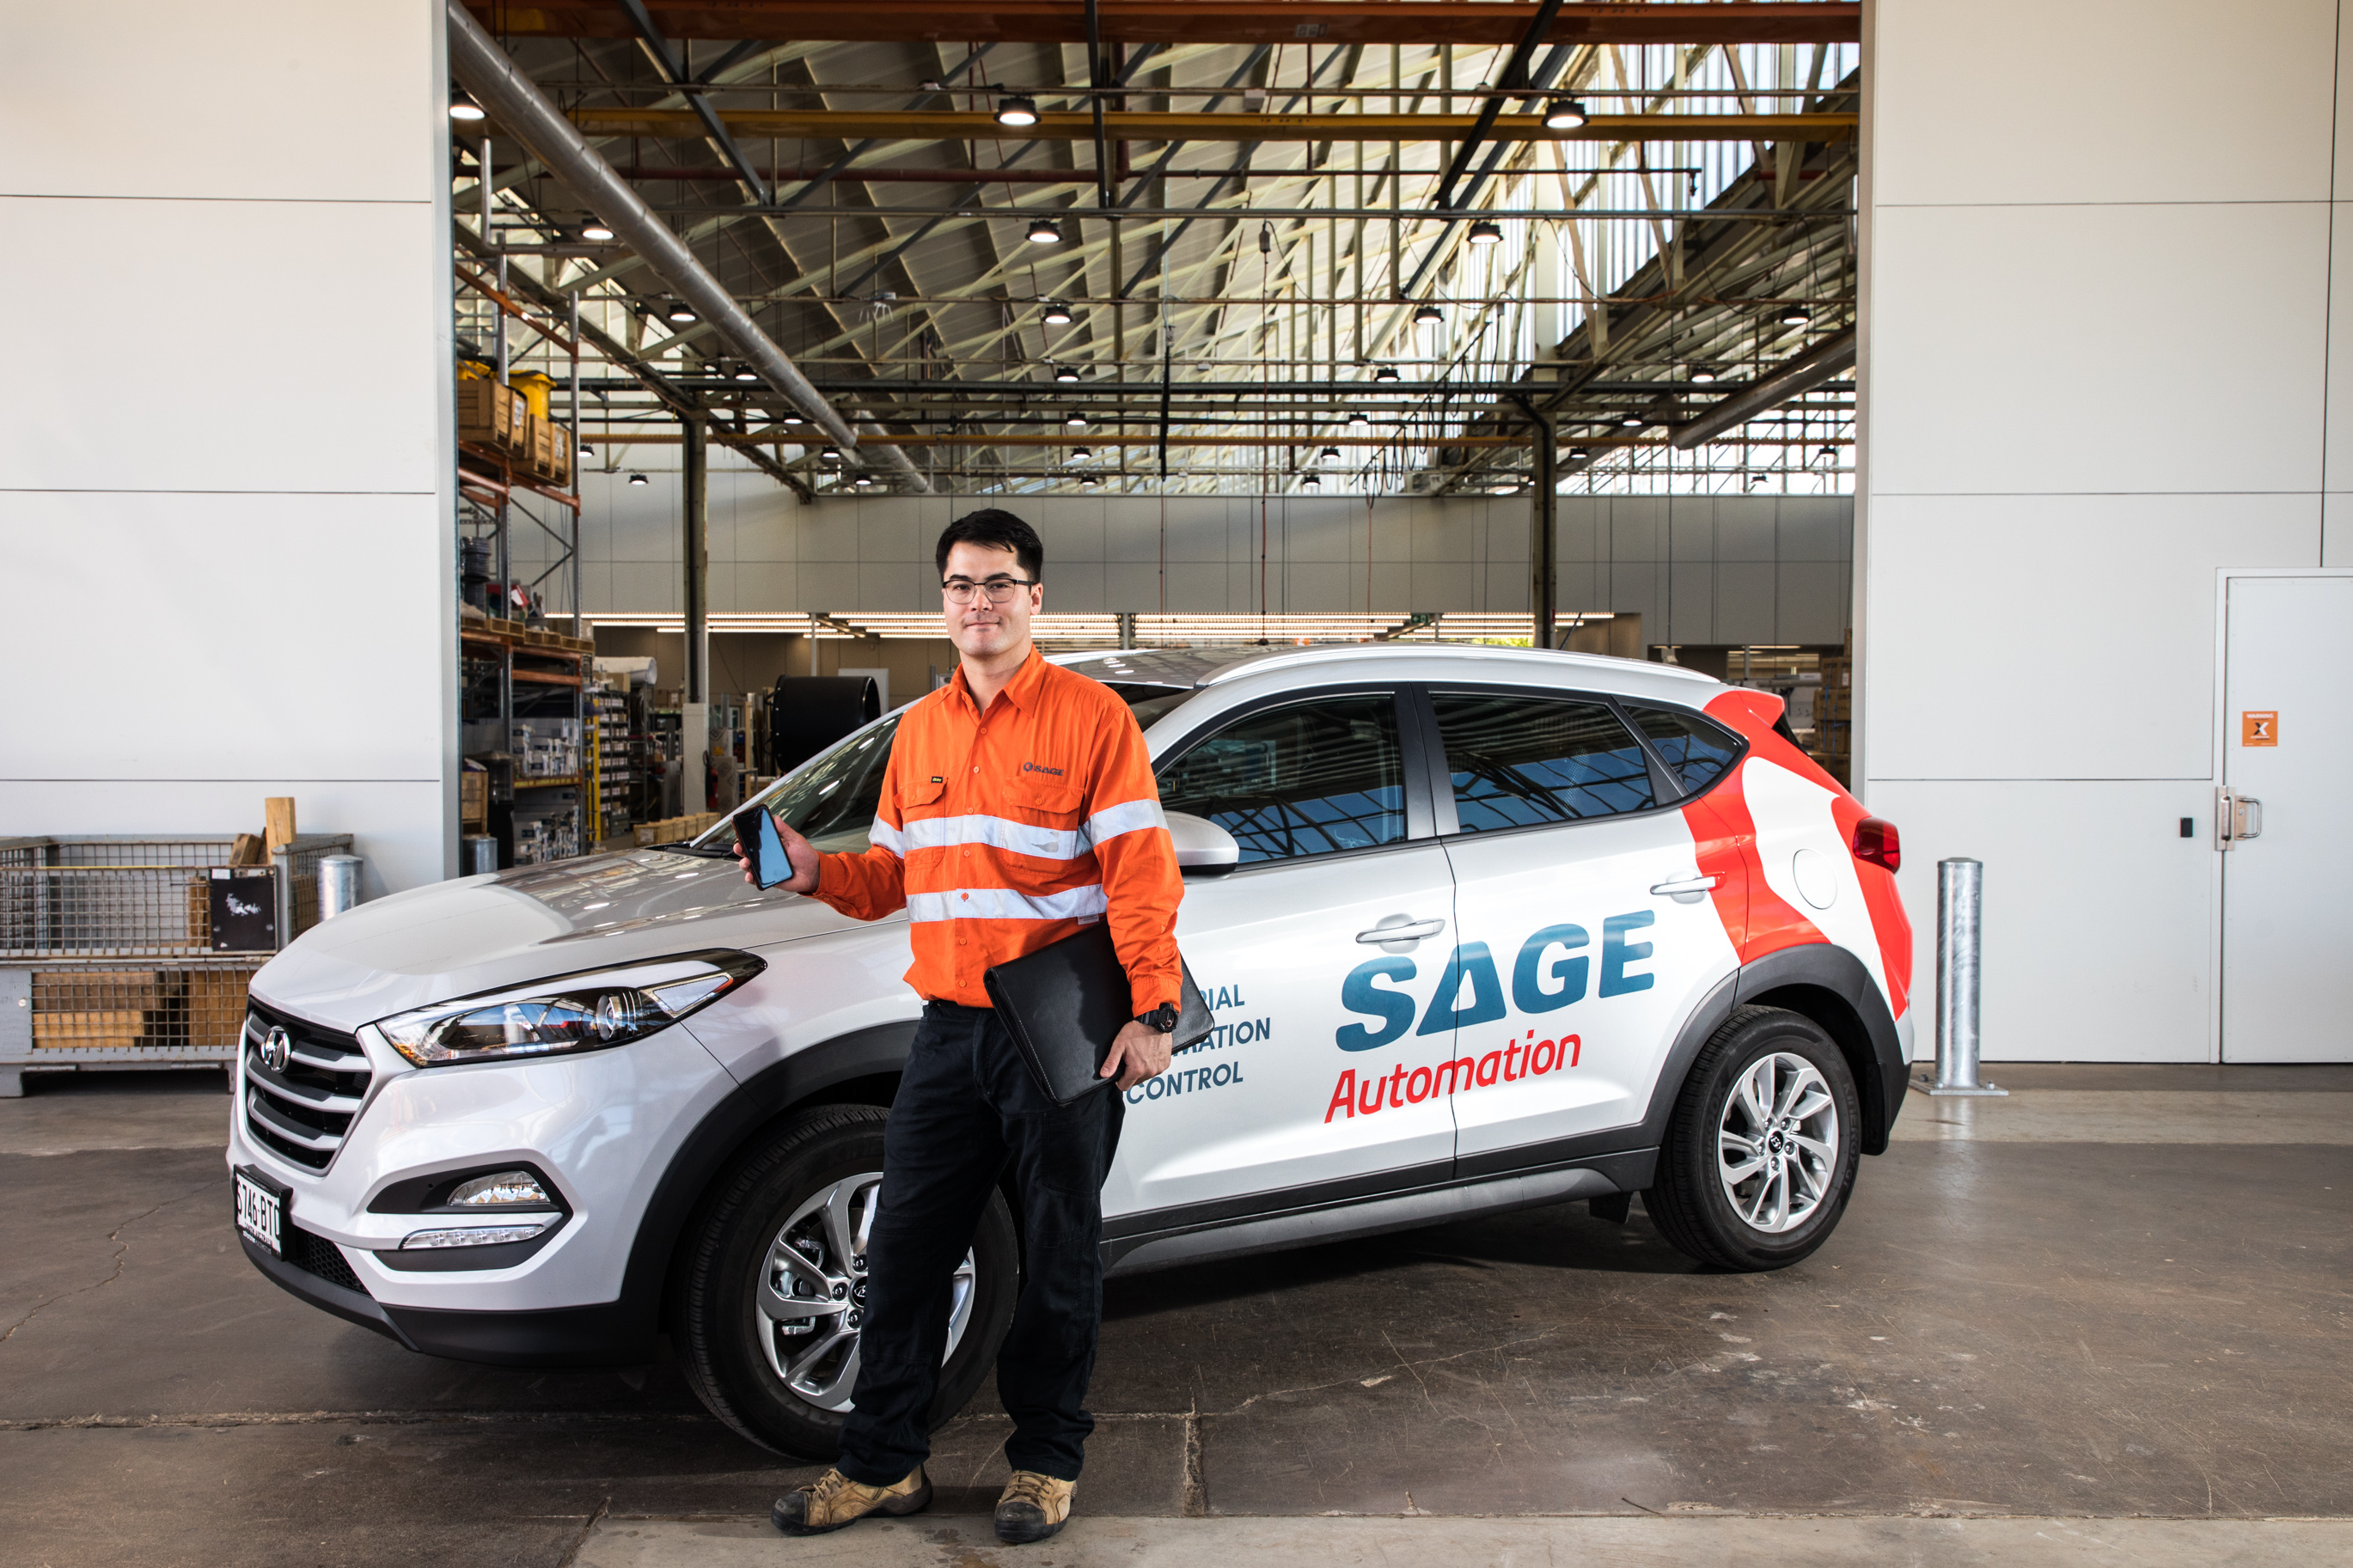 SAGE Service Tech and Vehicle